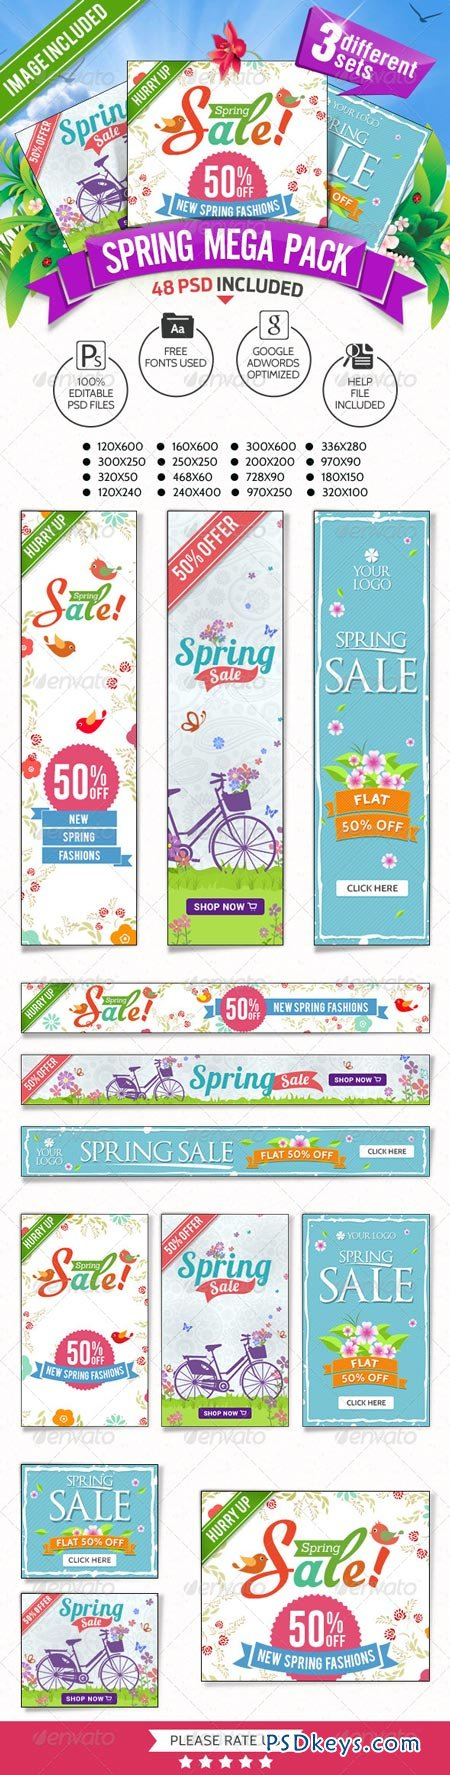 Spring Sale Mega Pack - 3 Banner Sets 7450266